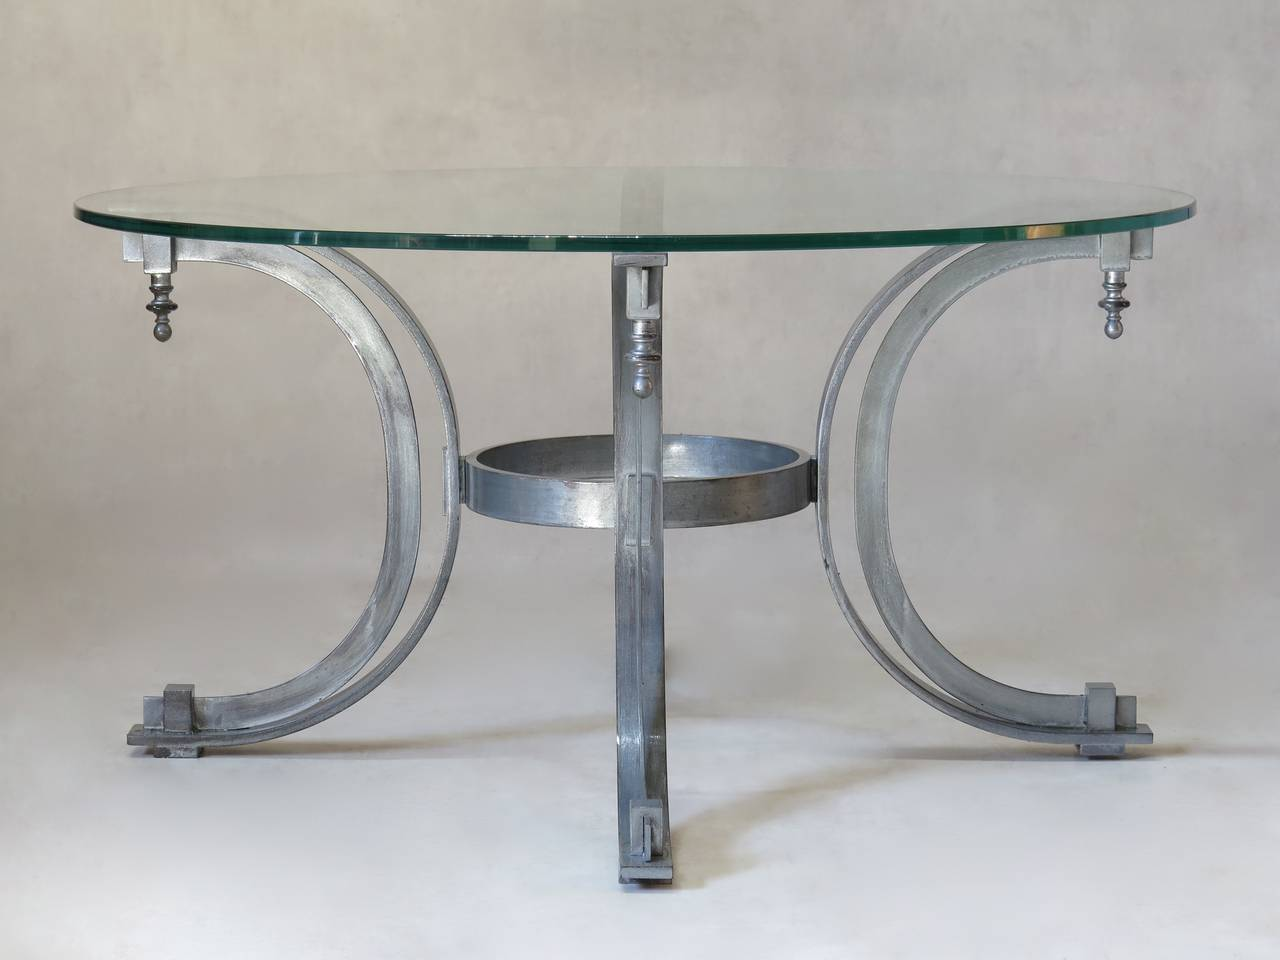 Silvered Iron Coffee Table with Glass Top, France, 1950s In Excellent Condition For Sale In Isle Sur La Sorgue, Vaucluse